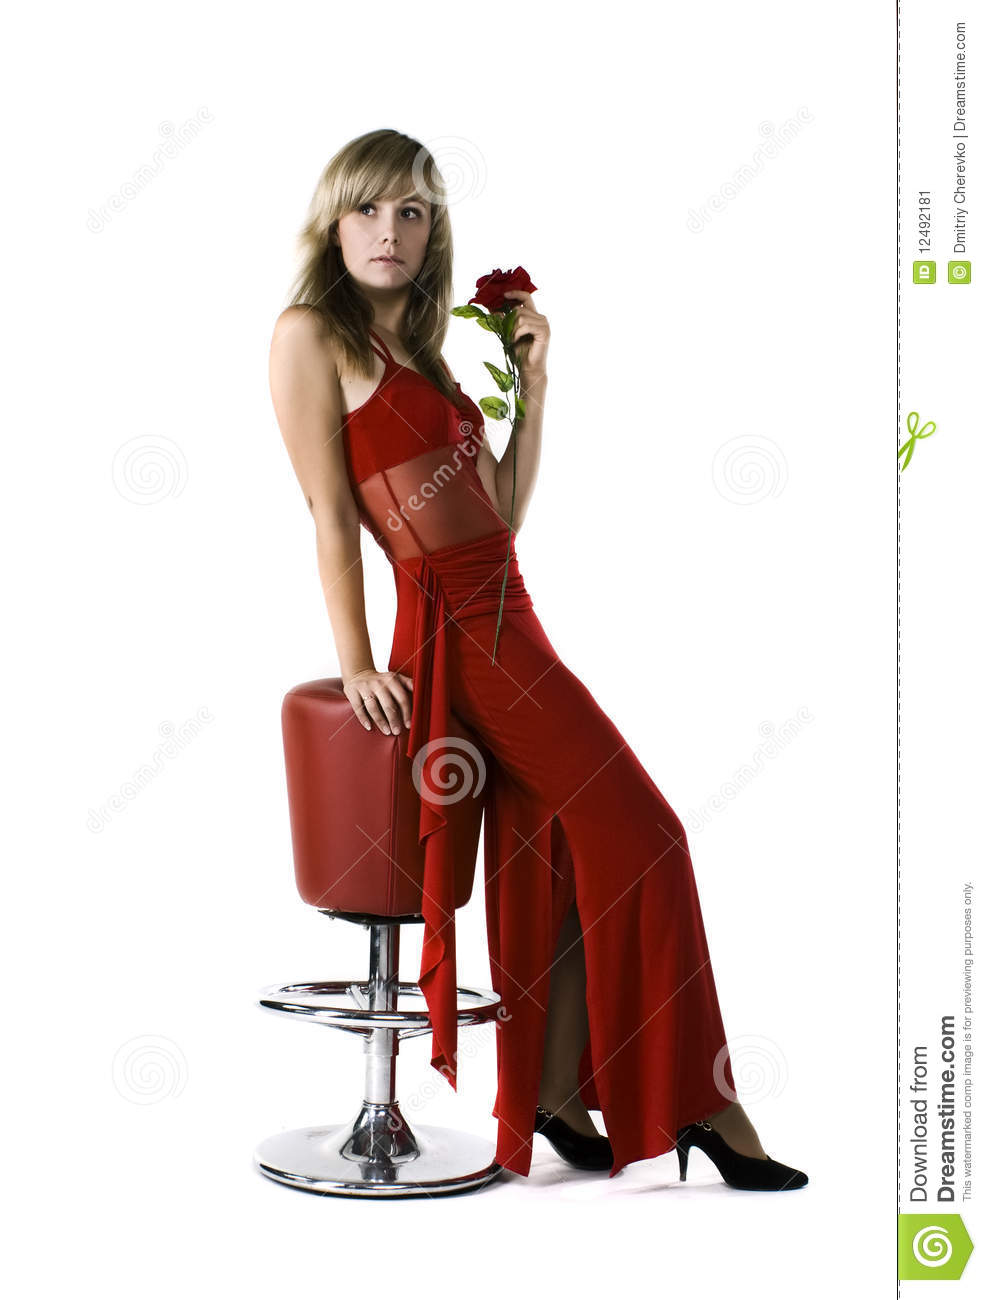 beautiful lady in red dress stock image image 12492181. Black Bedroom Furniture Sets. Home Design Ideas